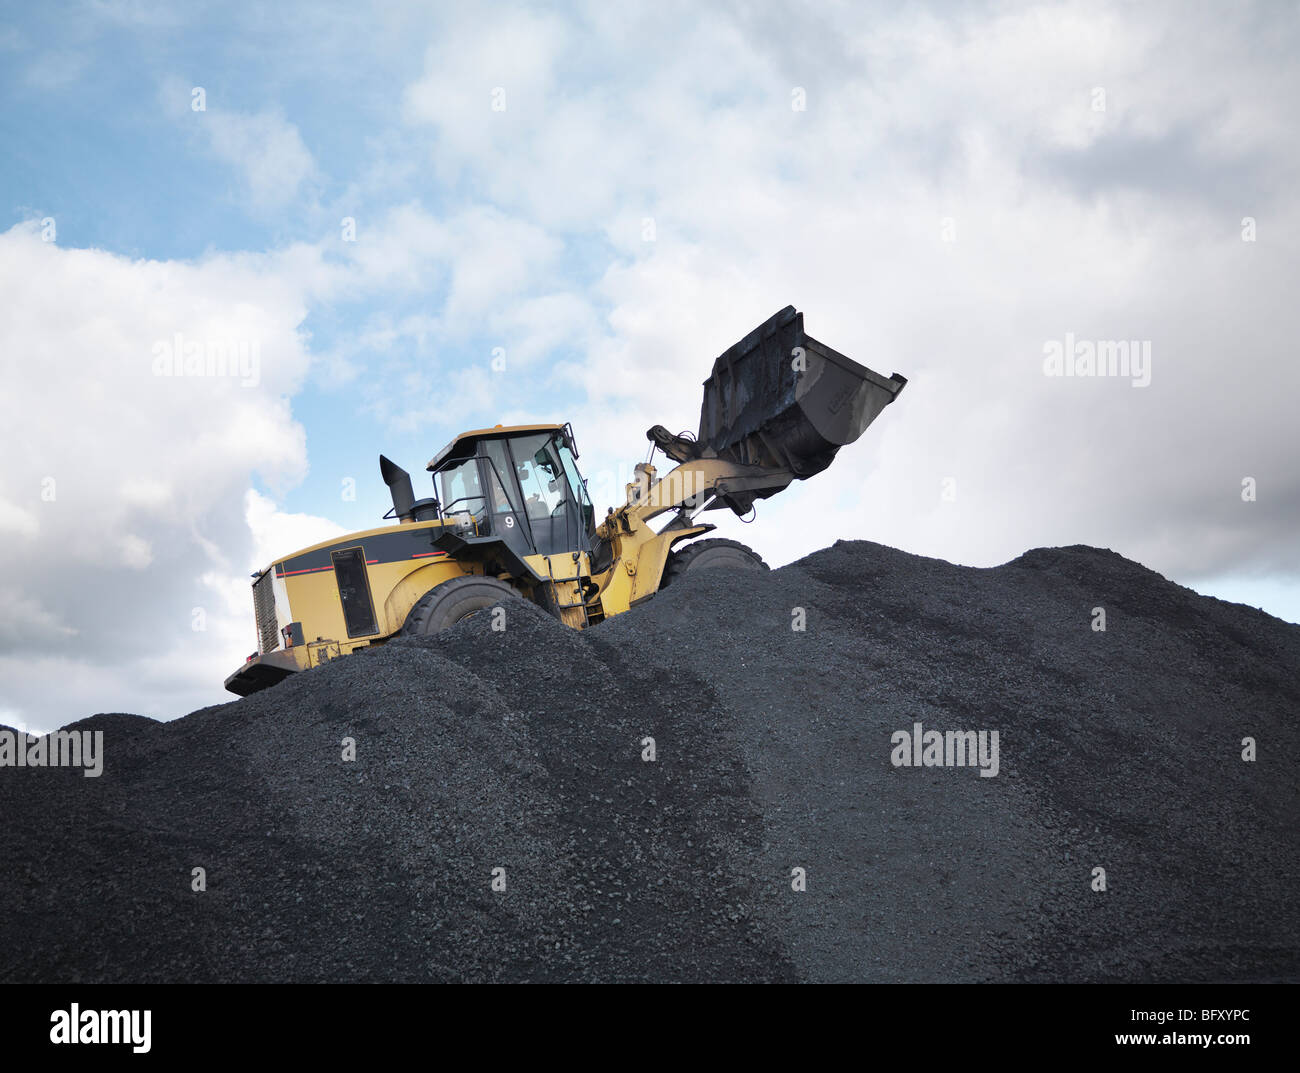 Digger On Pile Of Coal In Mine - Stock Image